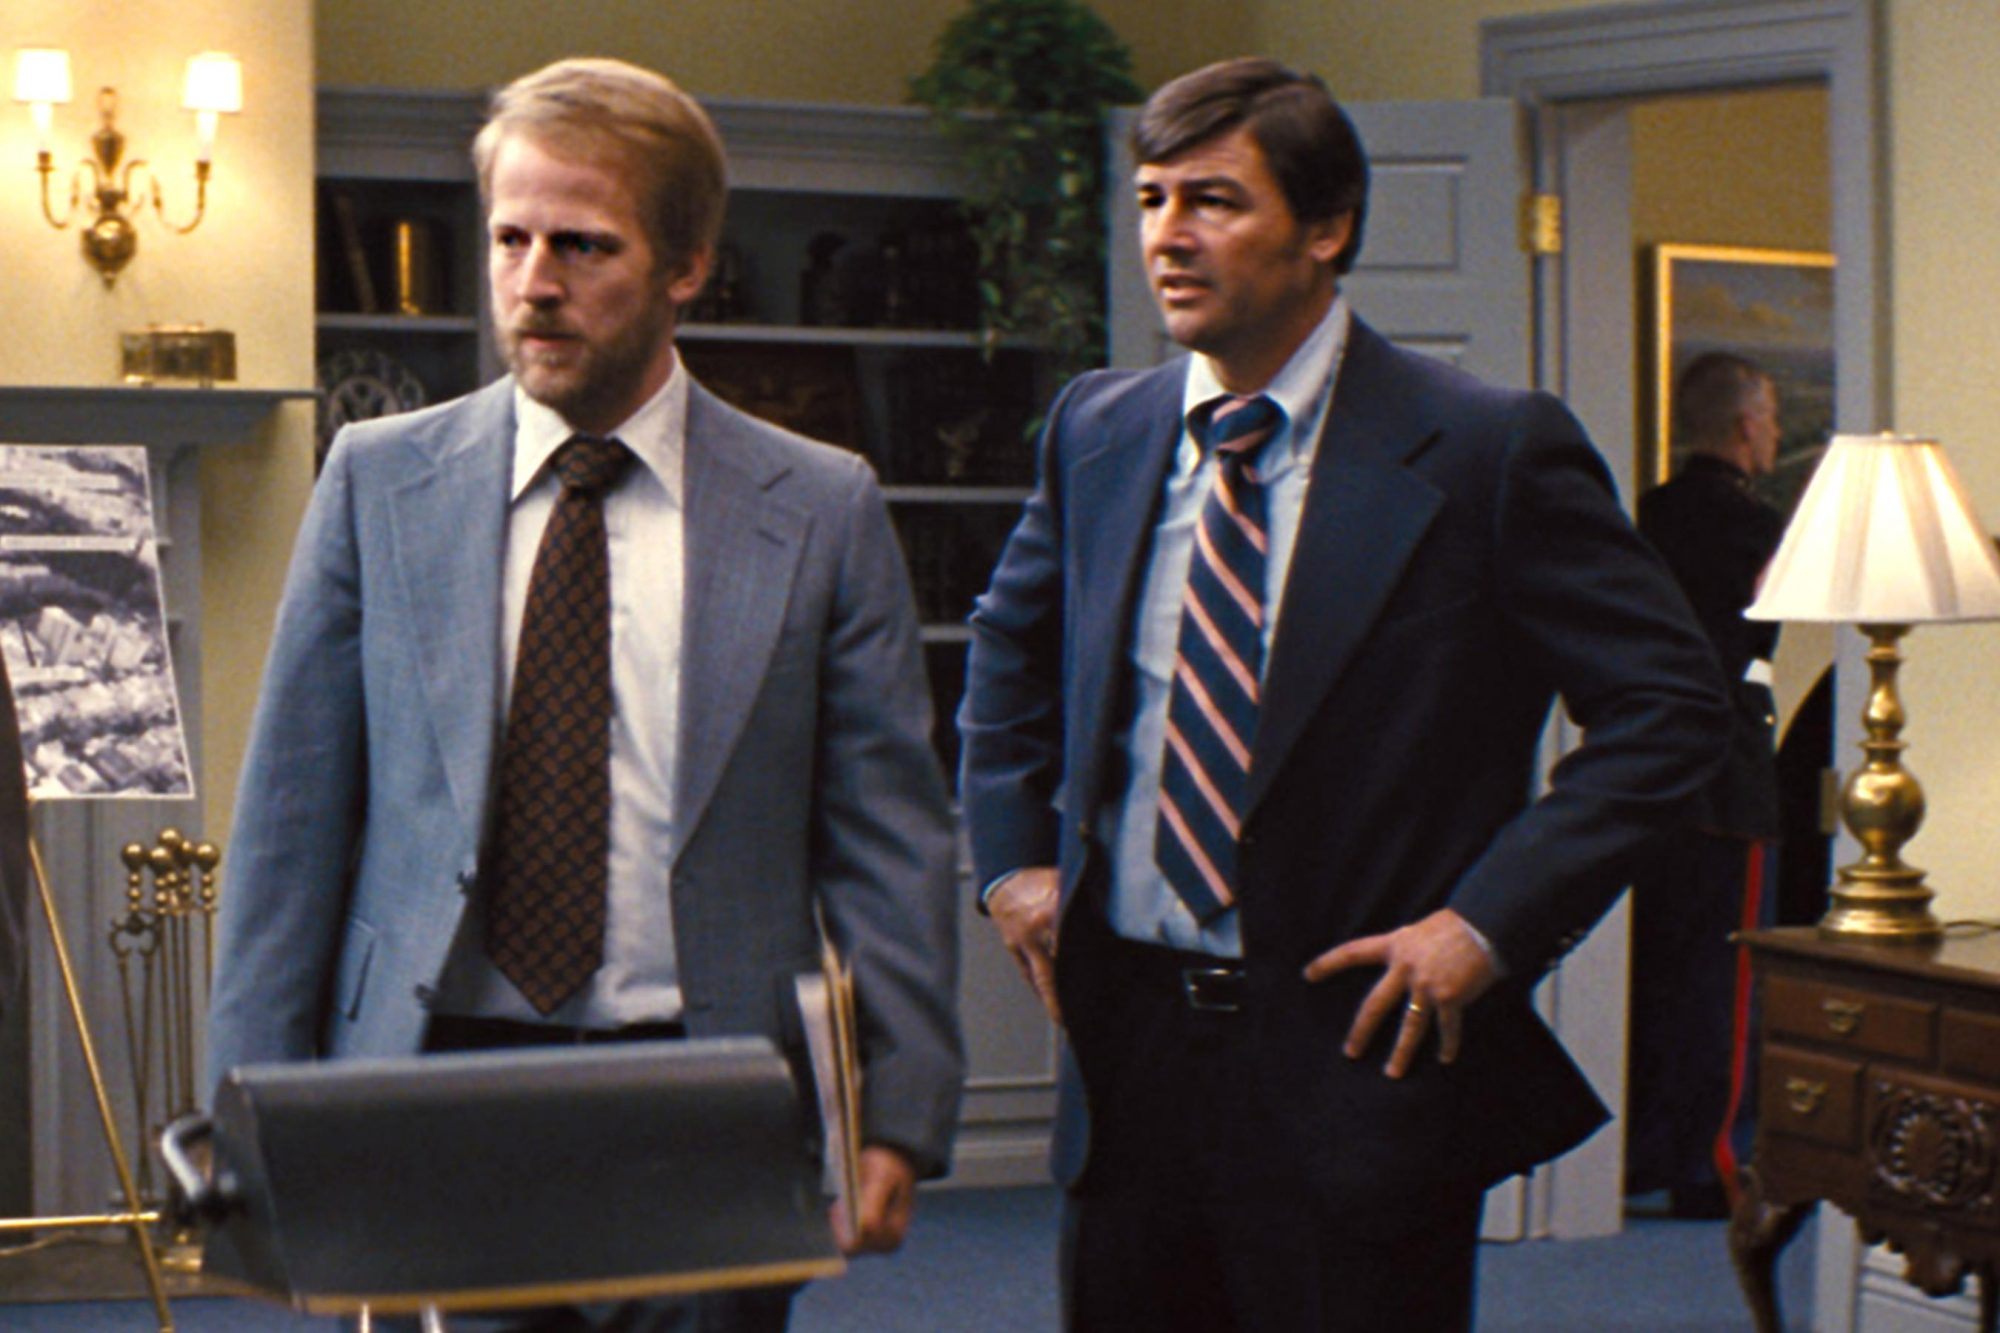 ARGO, from left: Rob Brownstein, David Sullivan, Kyle Chandler, 2012. ©Warner Bros. Pictures/Courtes